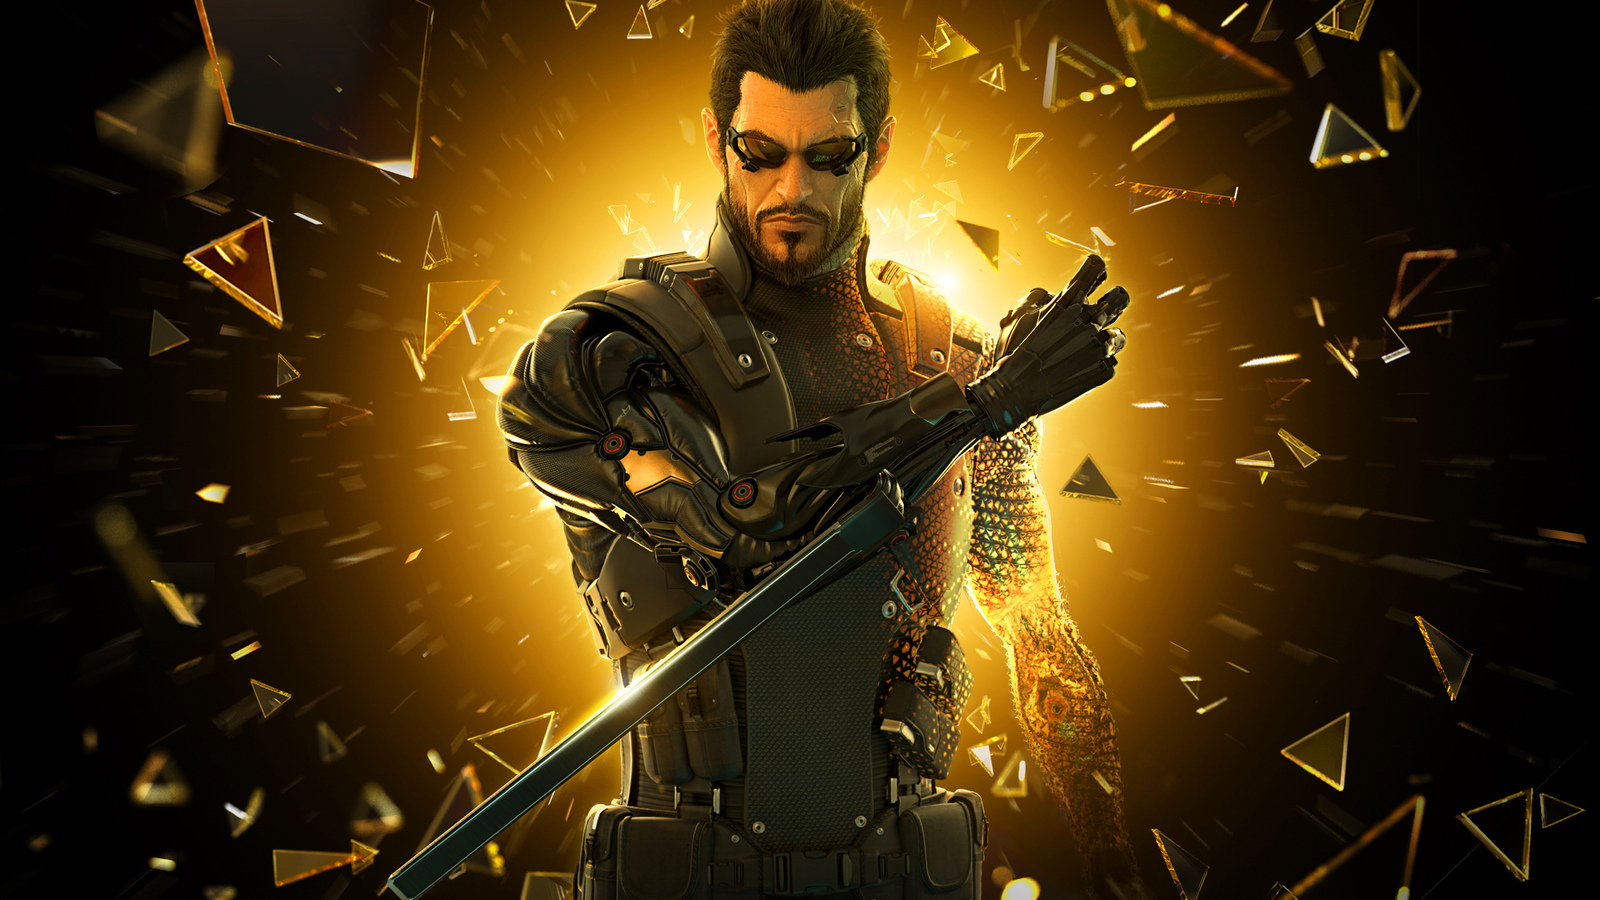 deus ex human revolution HD Wallpaper